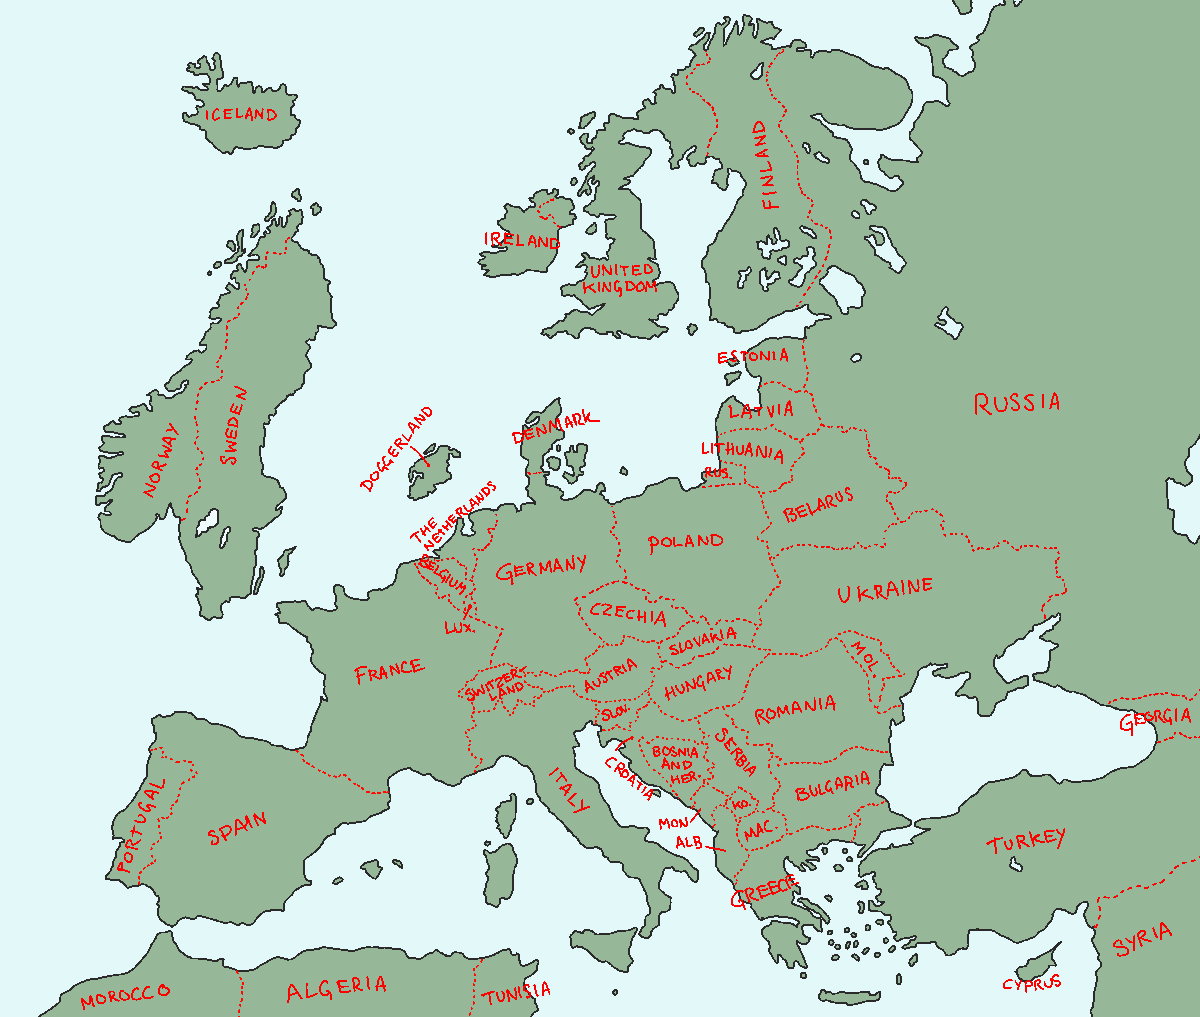 Map Of Europe But The British Isles And The Scandinavian Peninsula Have Switched Places Imaginary Maps Europe Map Psychedelic Illustration